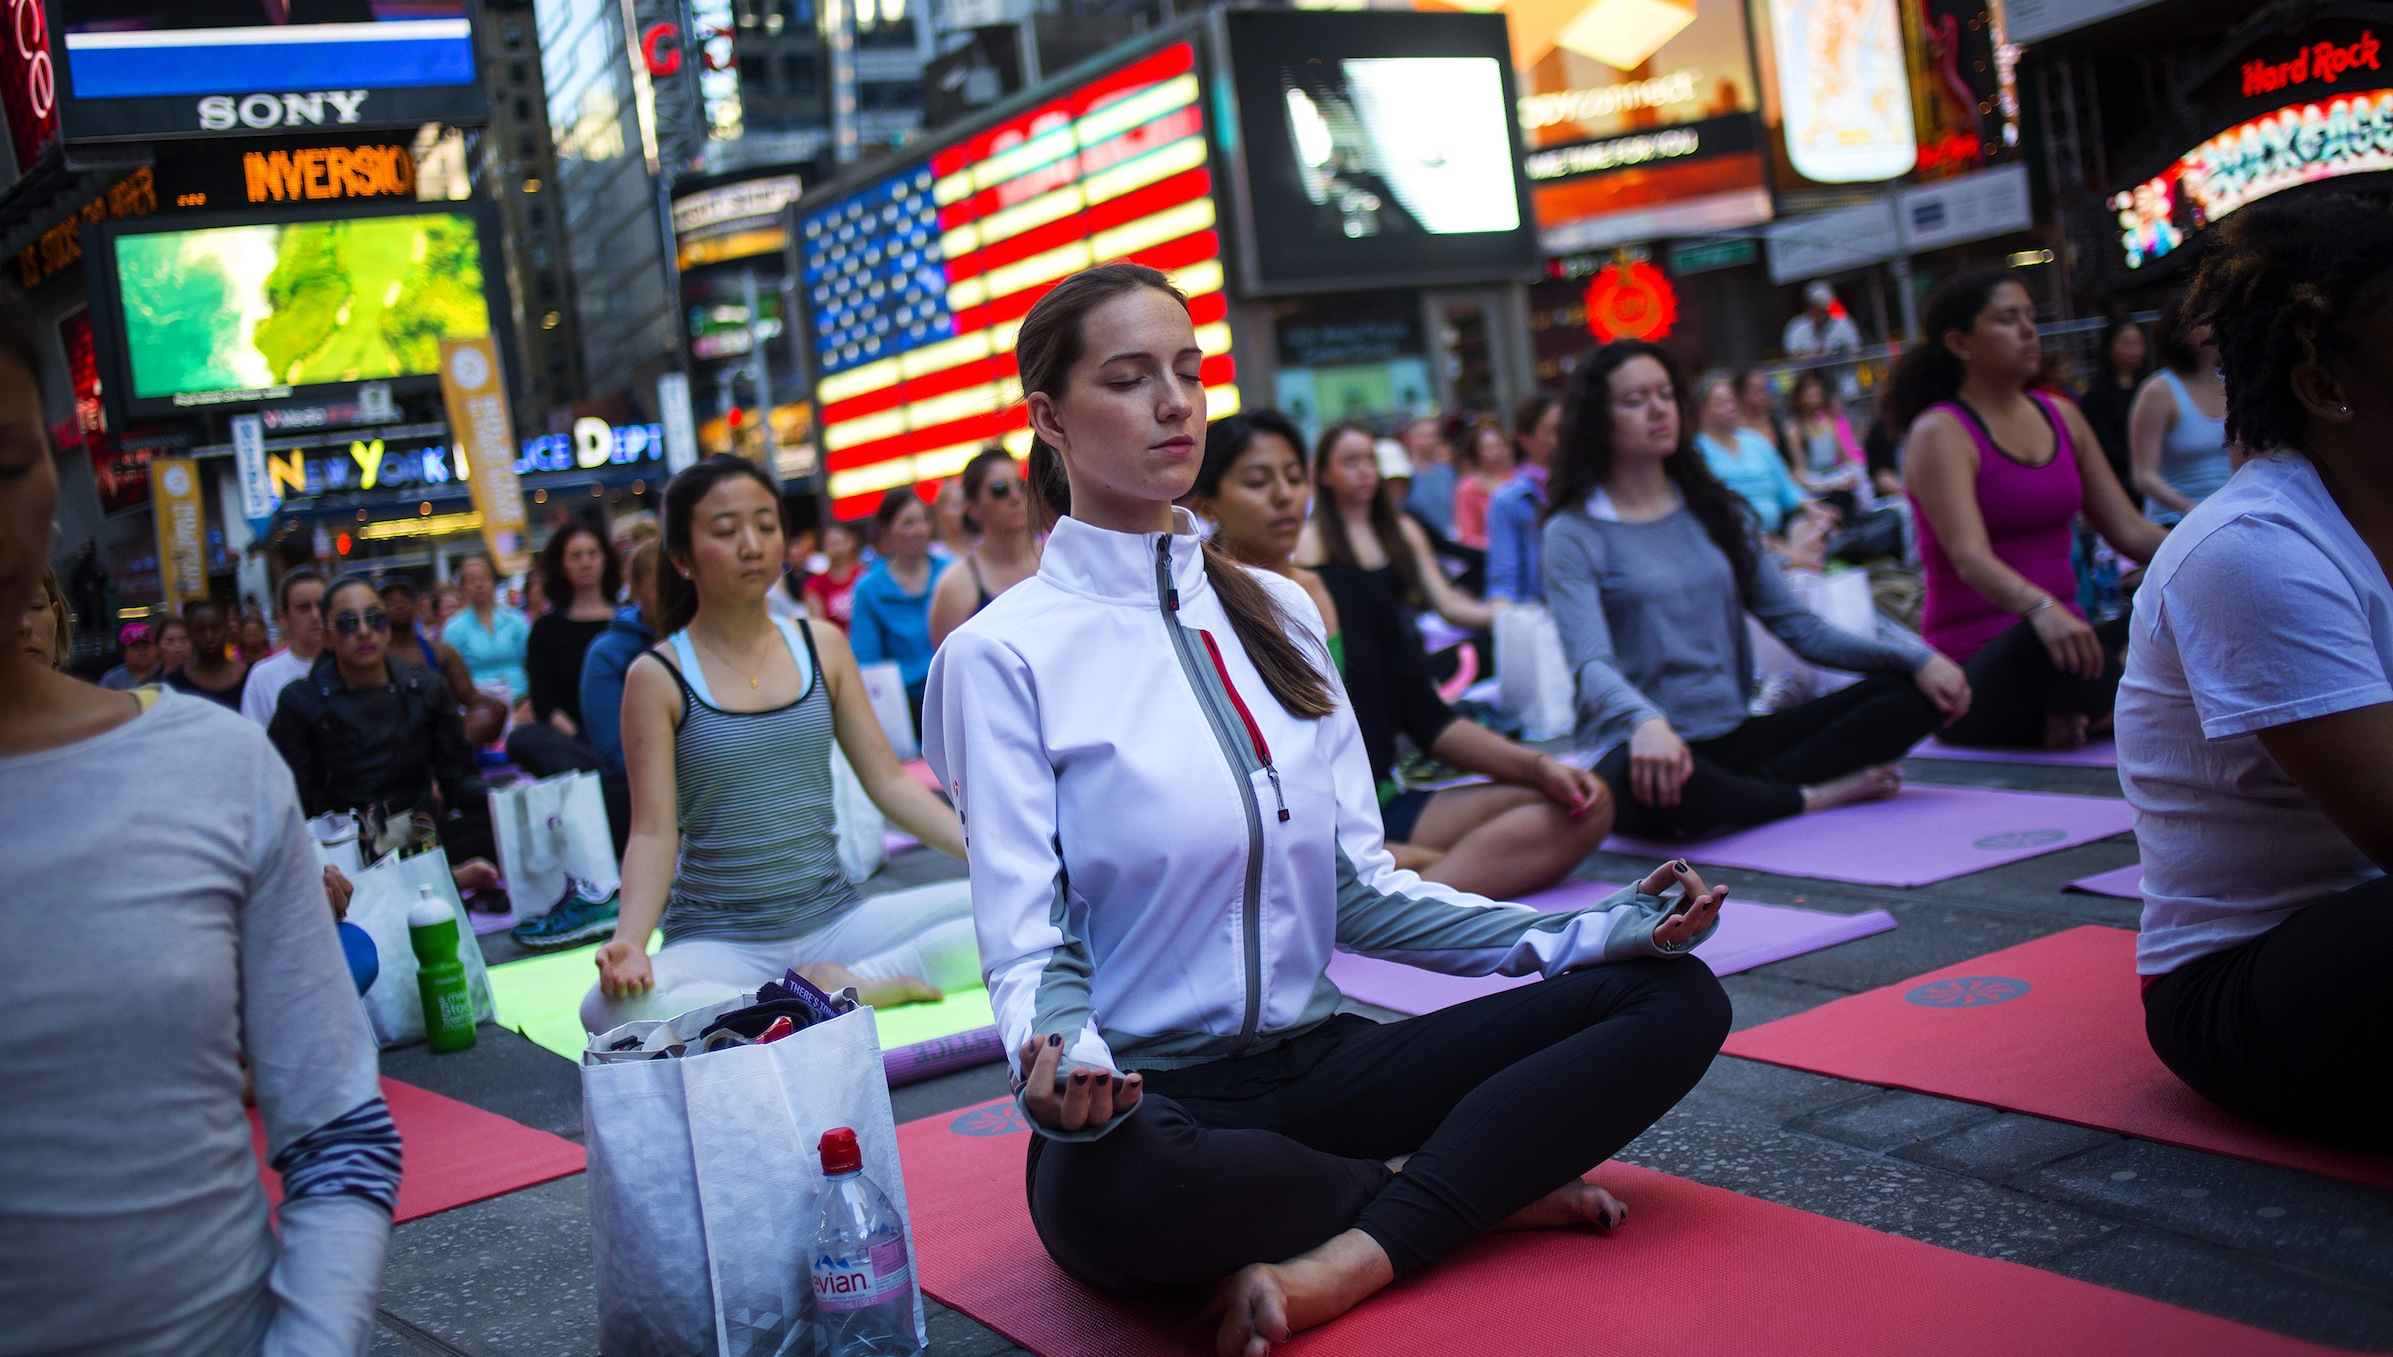 People practice yoga in Times Square as part of a Summer Solstice celebration in New York June 21, 2014. REUTERS/Eric Thayer   (UNITED STATES - Tags: SOCIETY HEALTH TPX IMAGES OF THE DAY) - RTR3UZGS